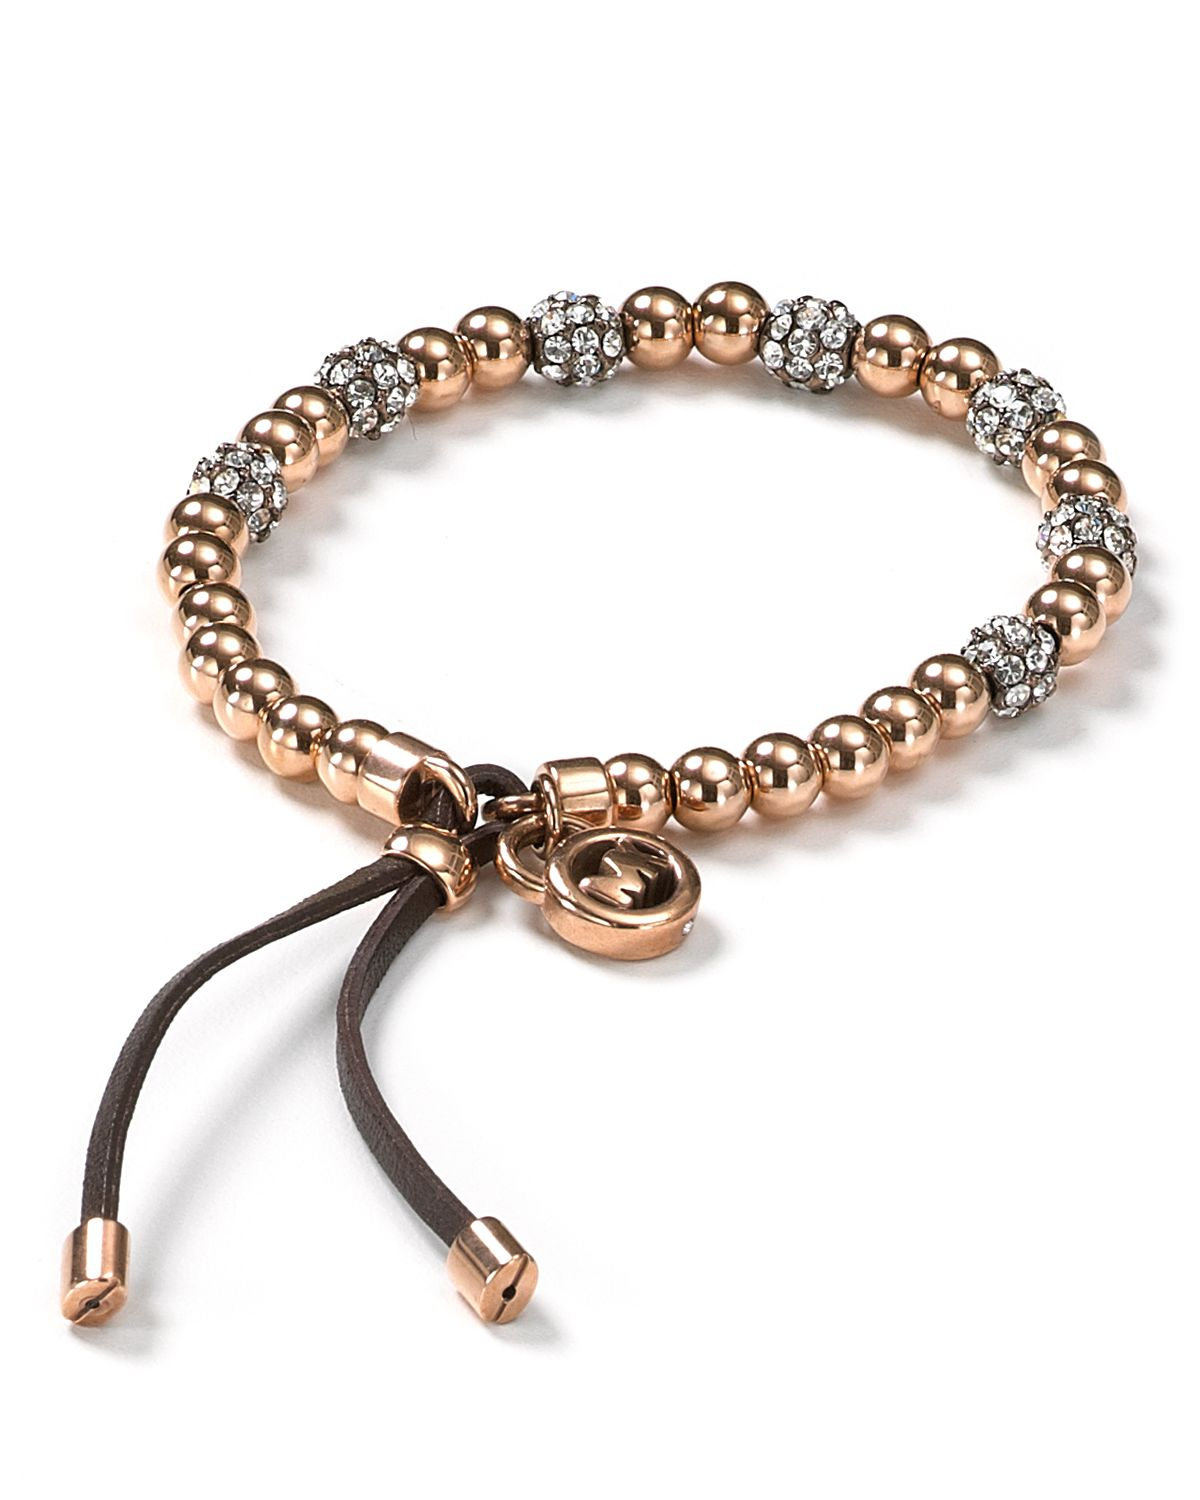 michael kors pave beaded bracelet in gold rose gold lyst. Black Bedroom Furniture Sets. Home Design Ideas